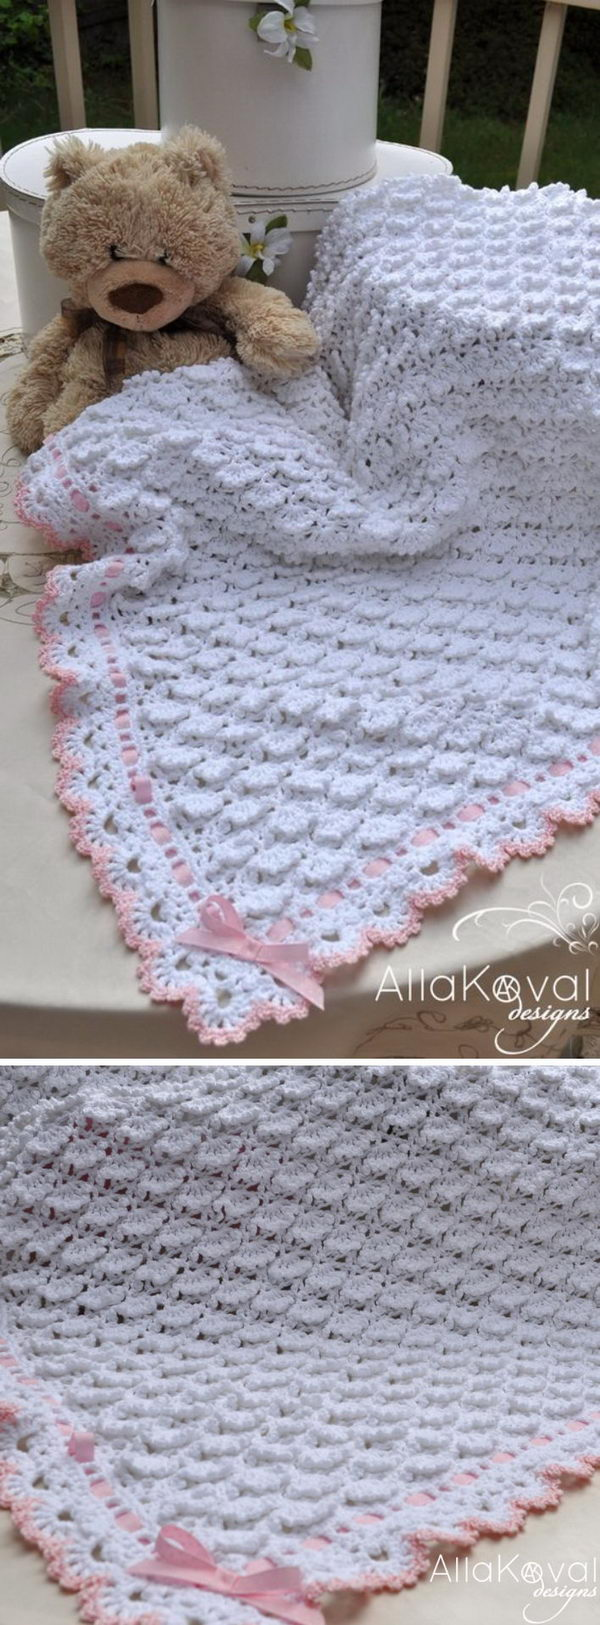 Crocheted Baby Blankets 30 Free Crochet Patterns For Blankets Hative